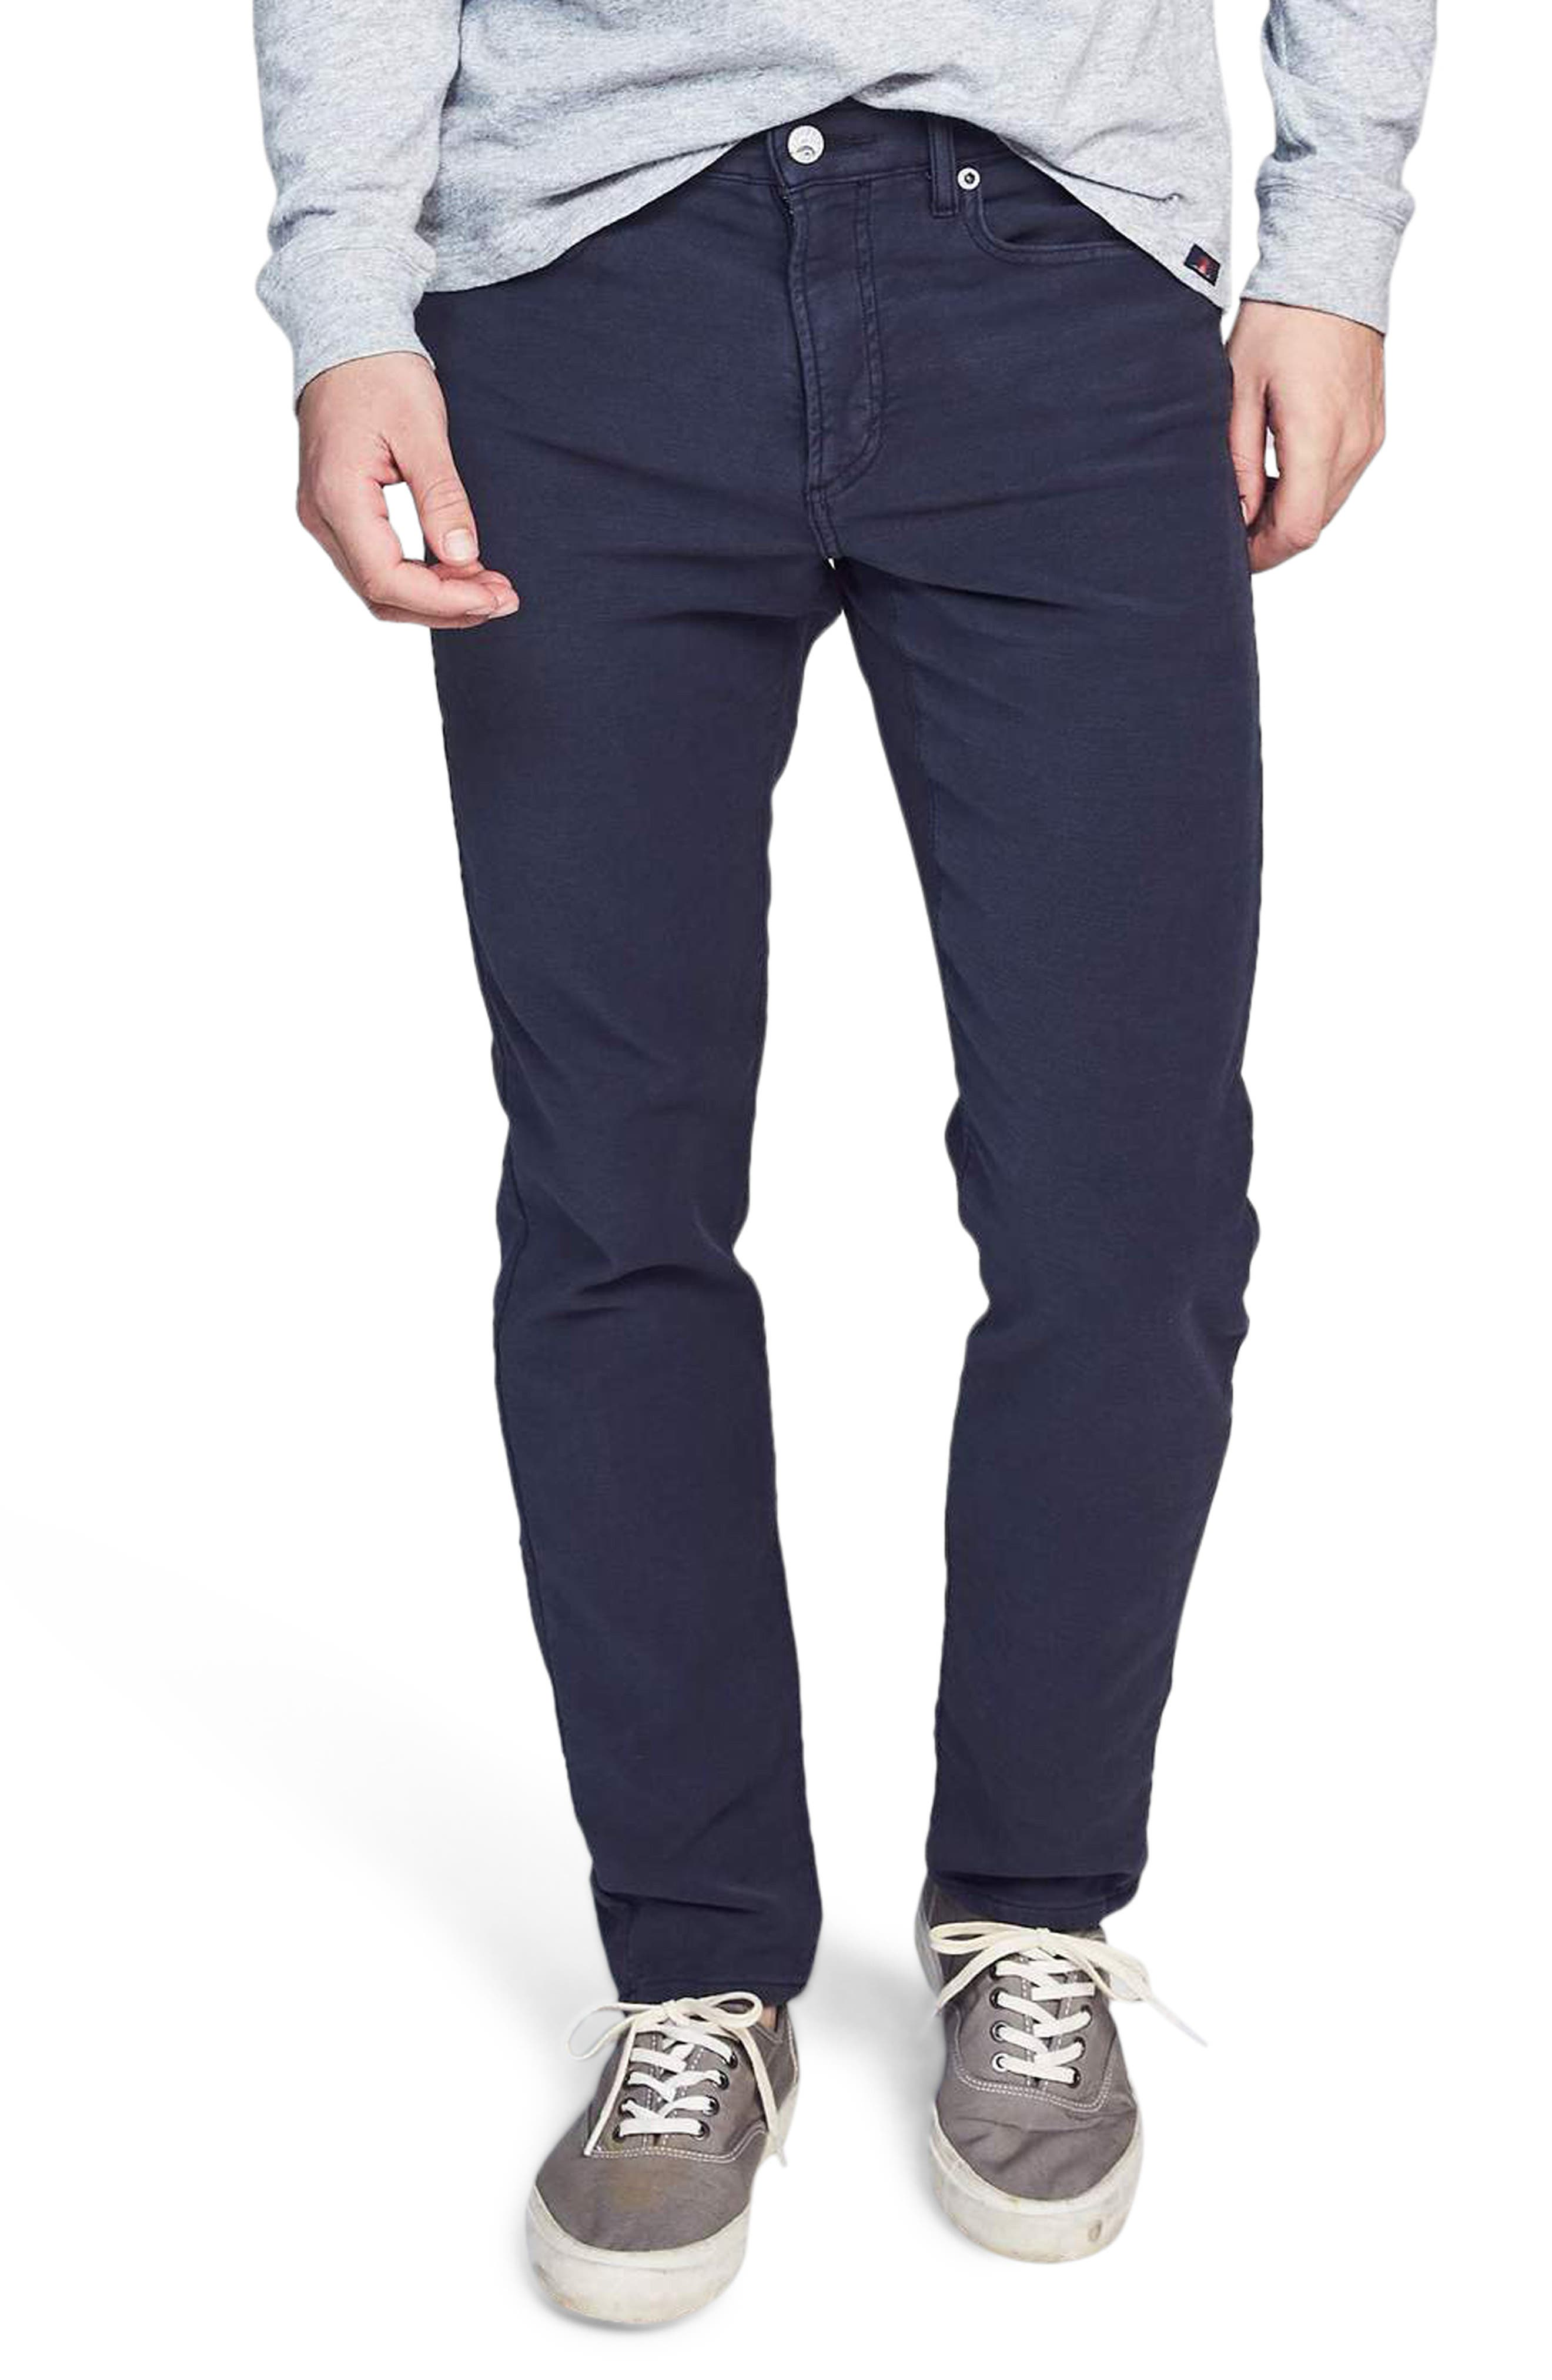 Stretchy cotton French terry brings ridiculous softness to pants styled with five-pocket construction and easy comfort that\\\'ll make them an instant favorite. Style Name: Faherty Stretch Terry 5-Pocket Pants. Style Number: 5923245. Available in stores.